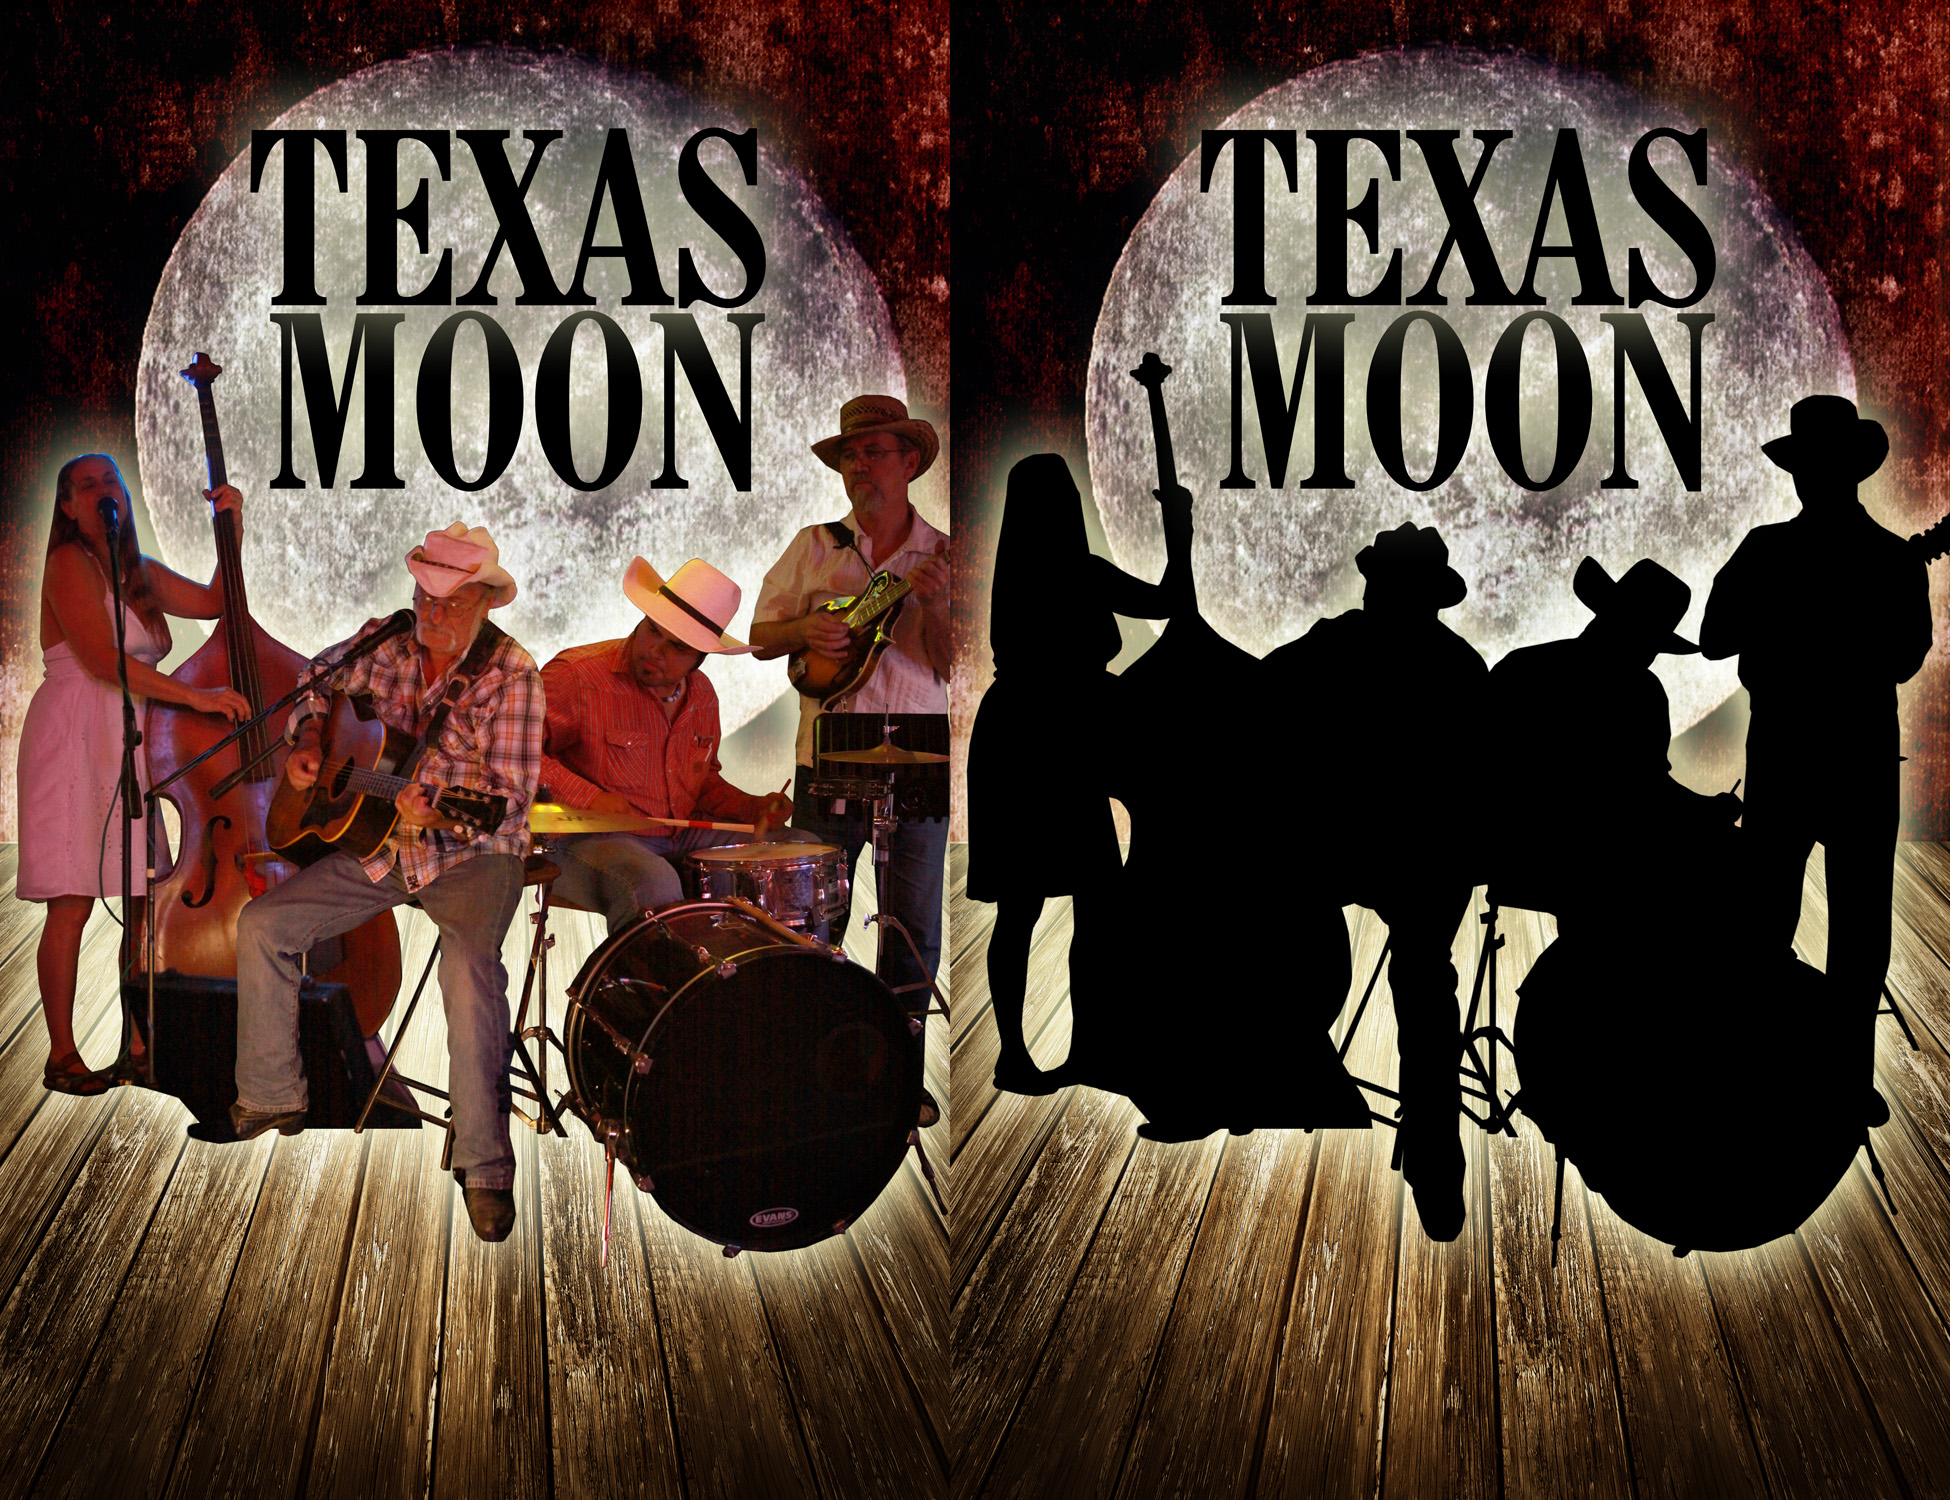 texasmoon